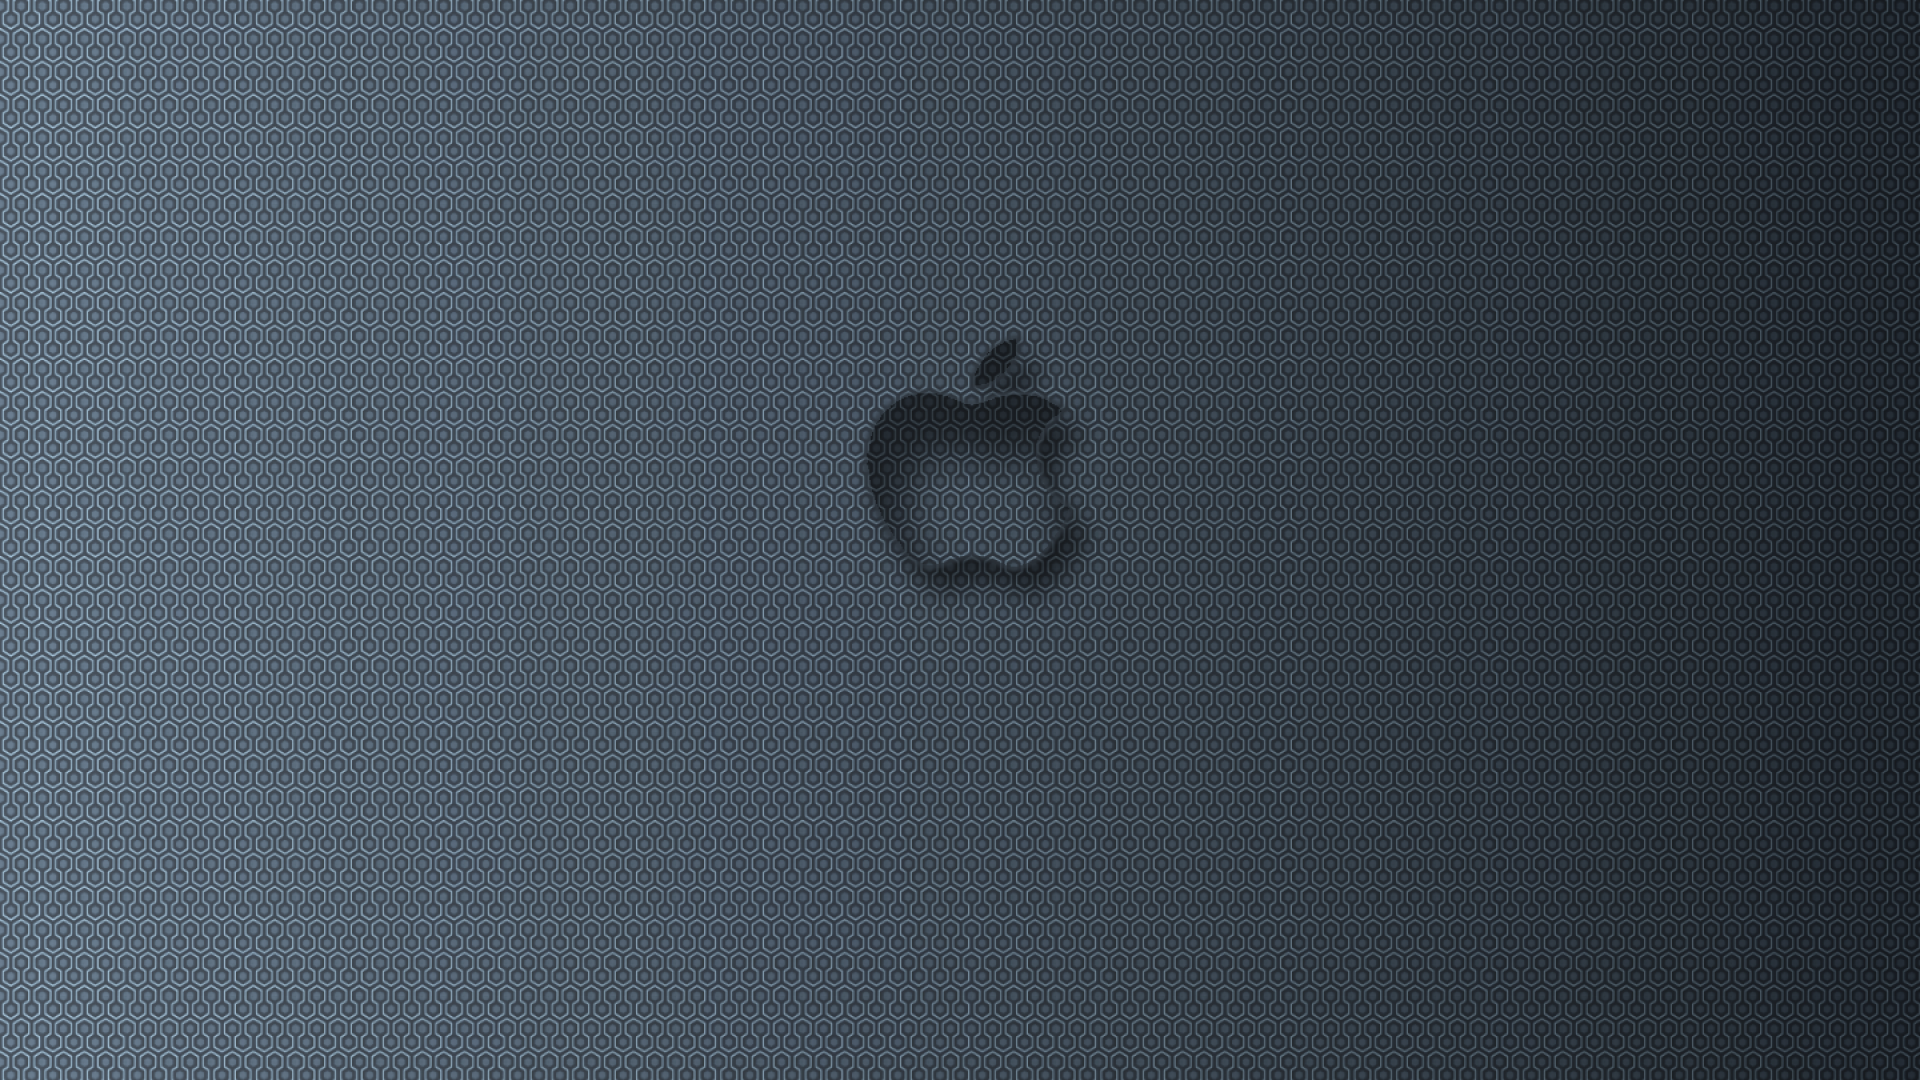 Hexagon-Apple-Wallpaper